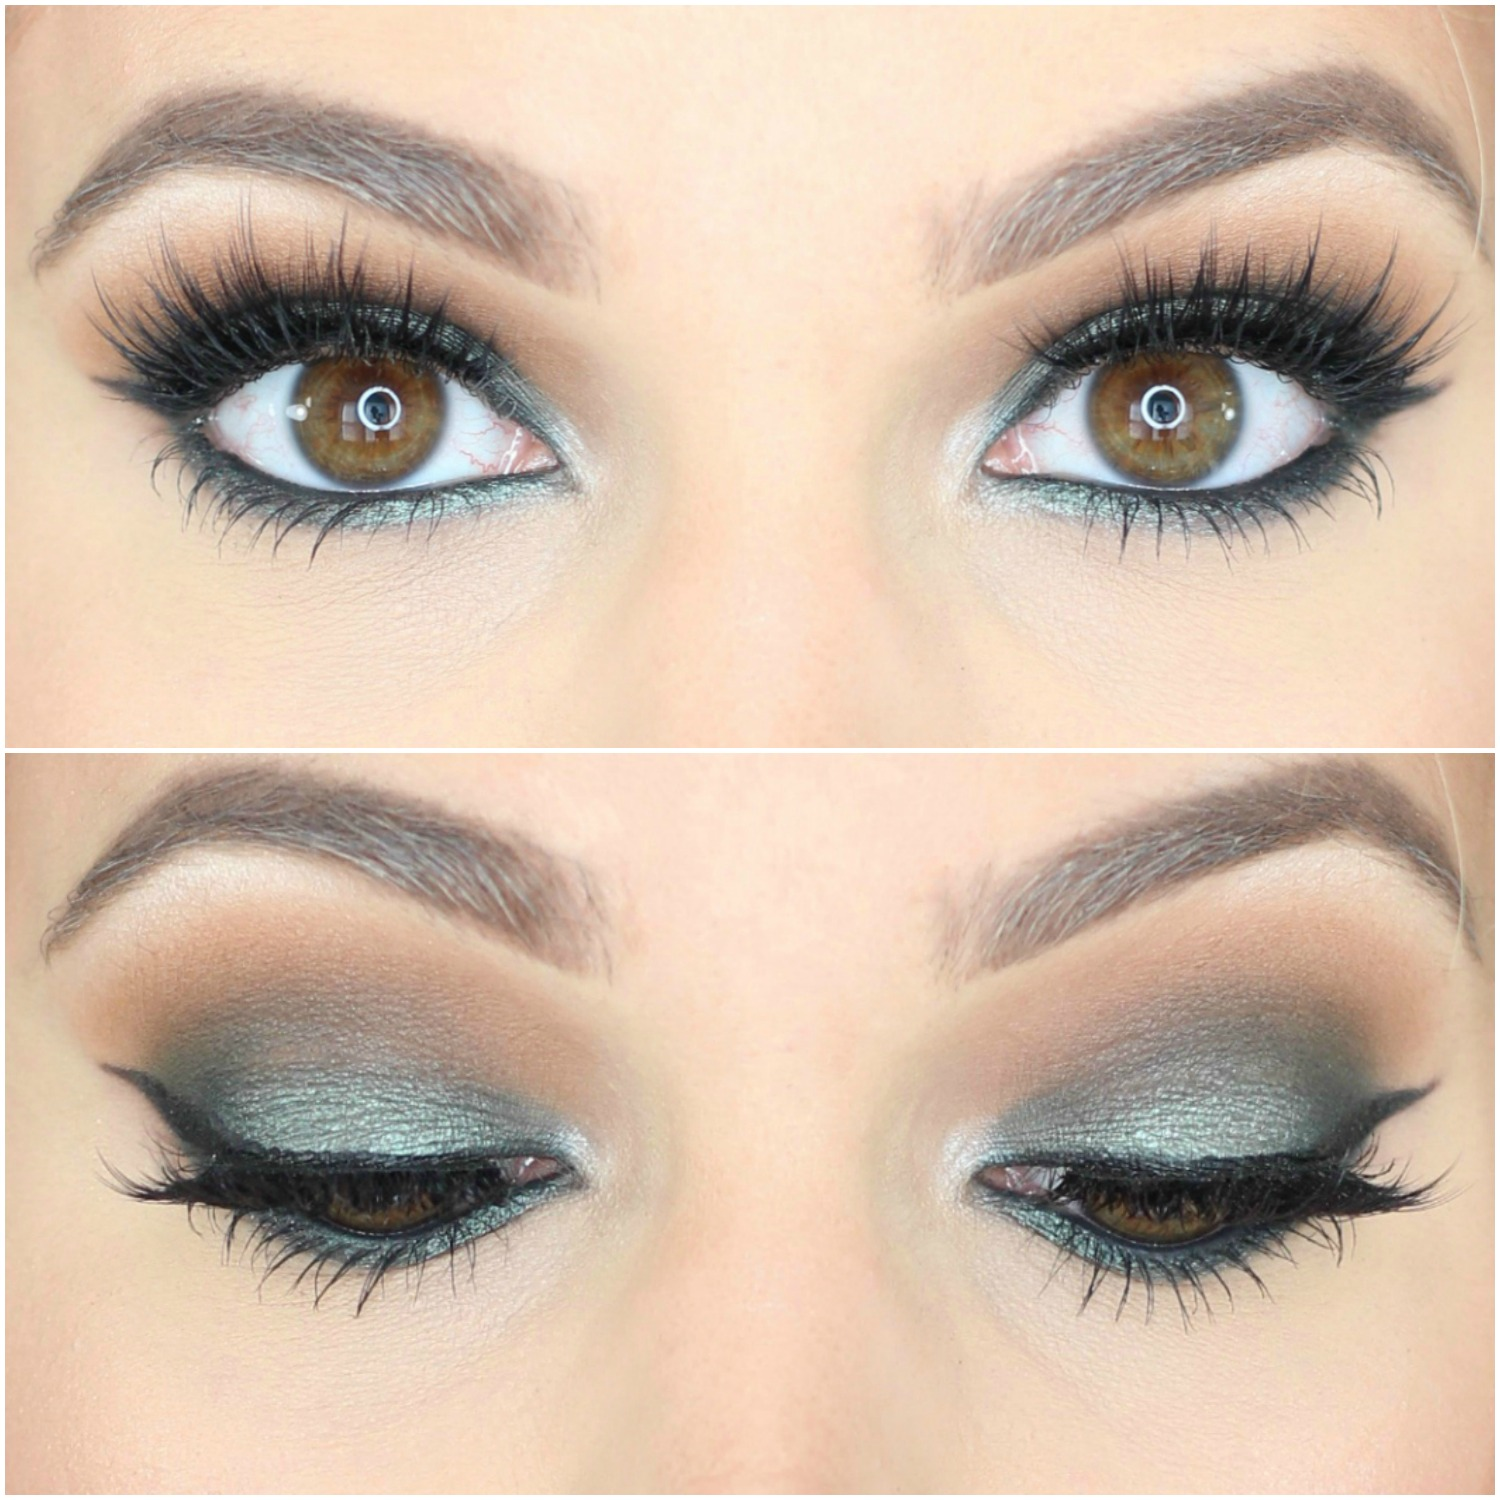 Jaclyn Hill Morphe Palette Looks on Brown Eyes Green Smokey Eye